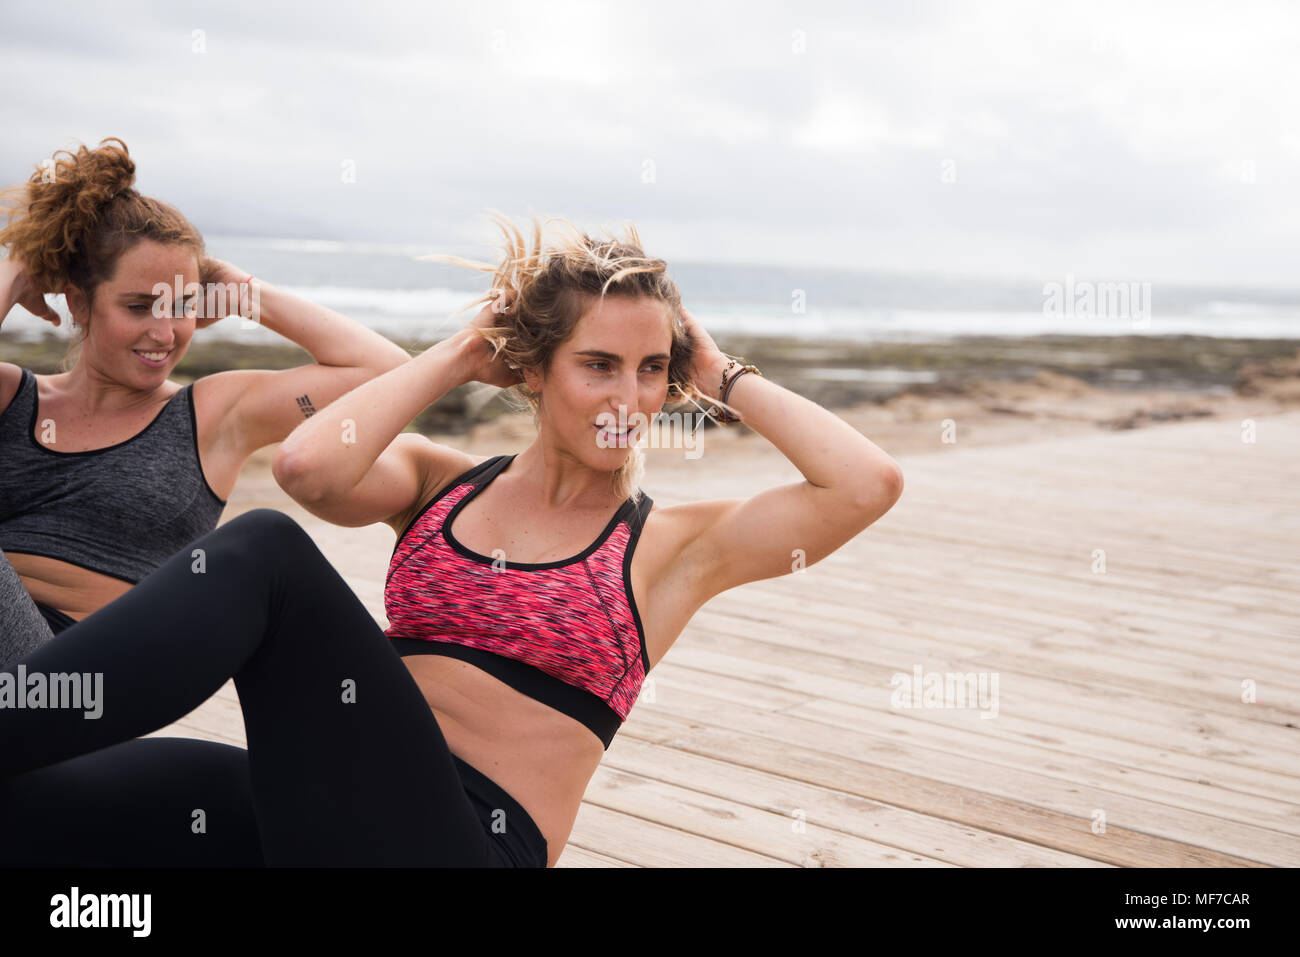 Fit young women doing knee raises training outside in modern crop tops and tights - Stock Image